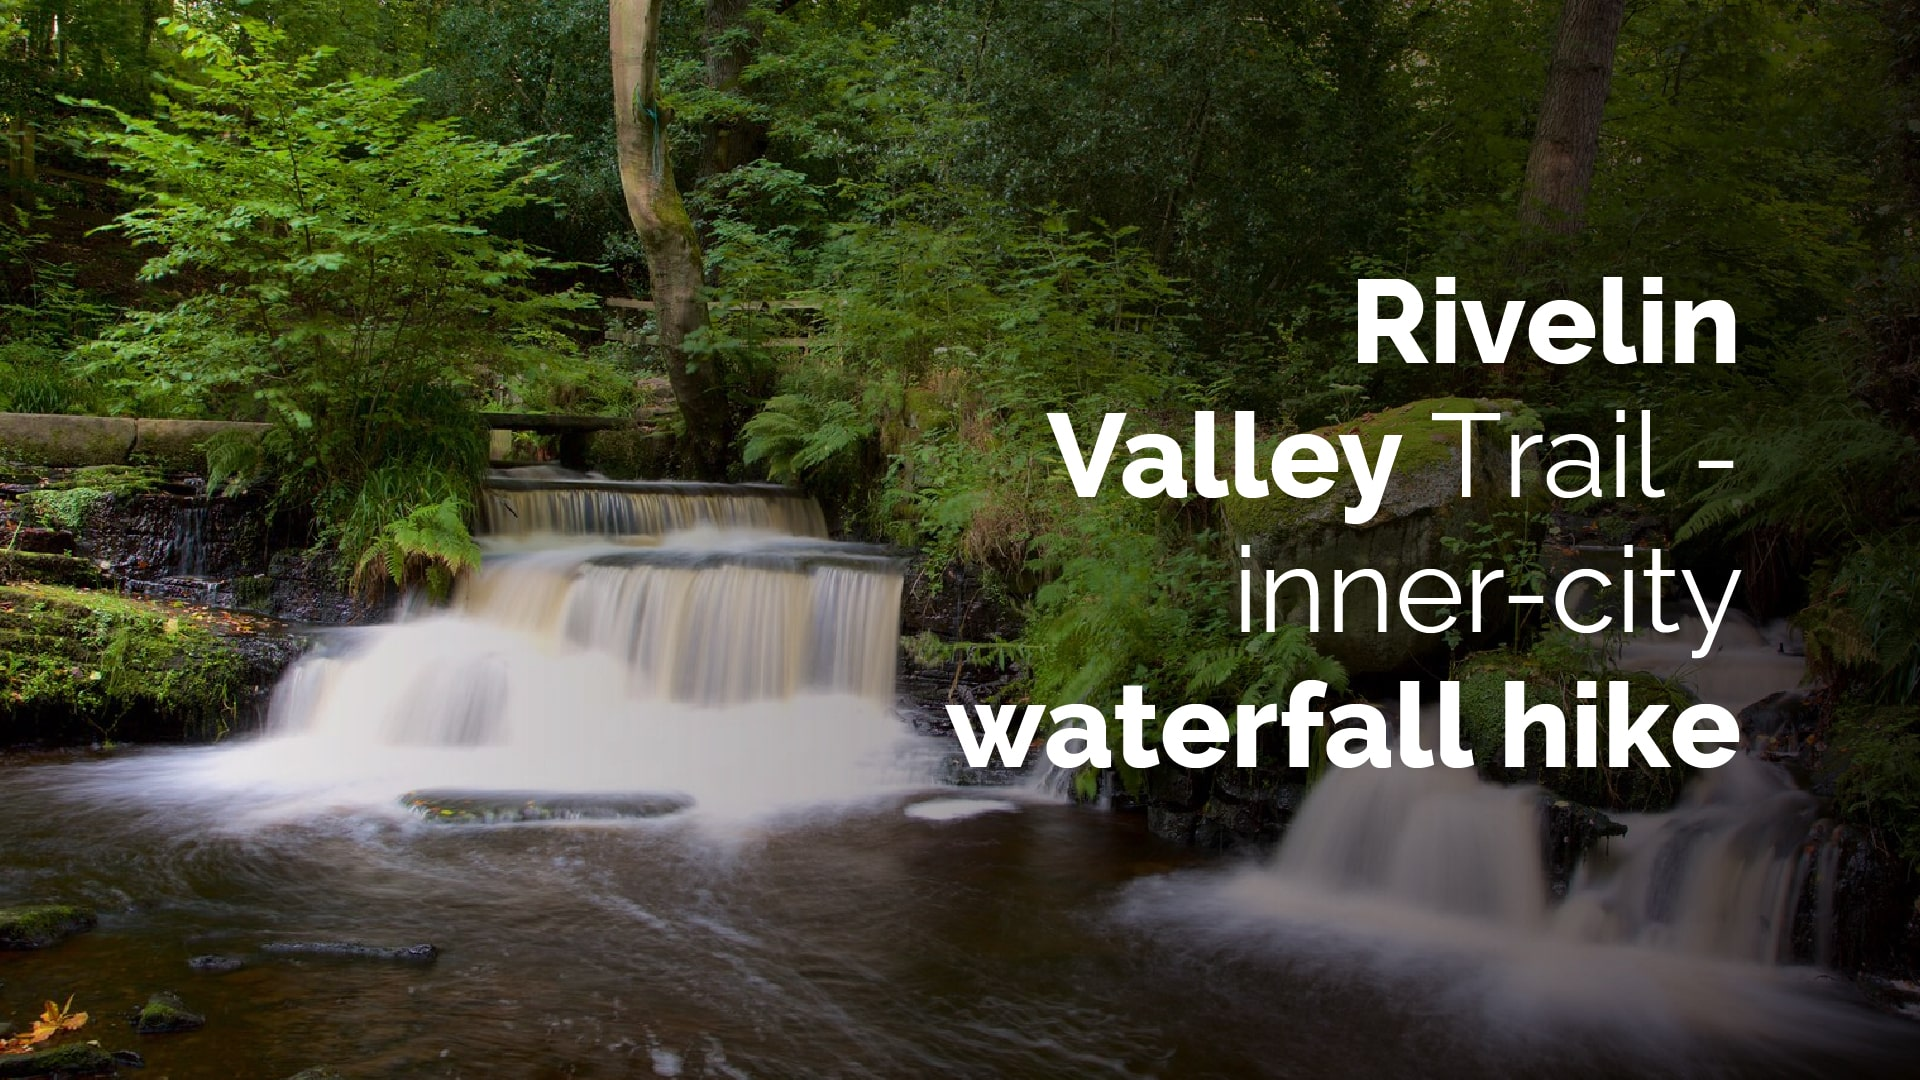 rivelin vally trial - inner city waterfall hike